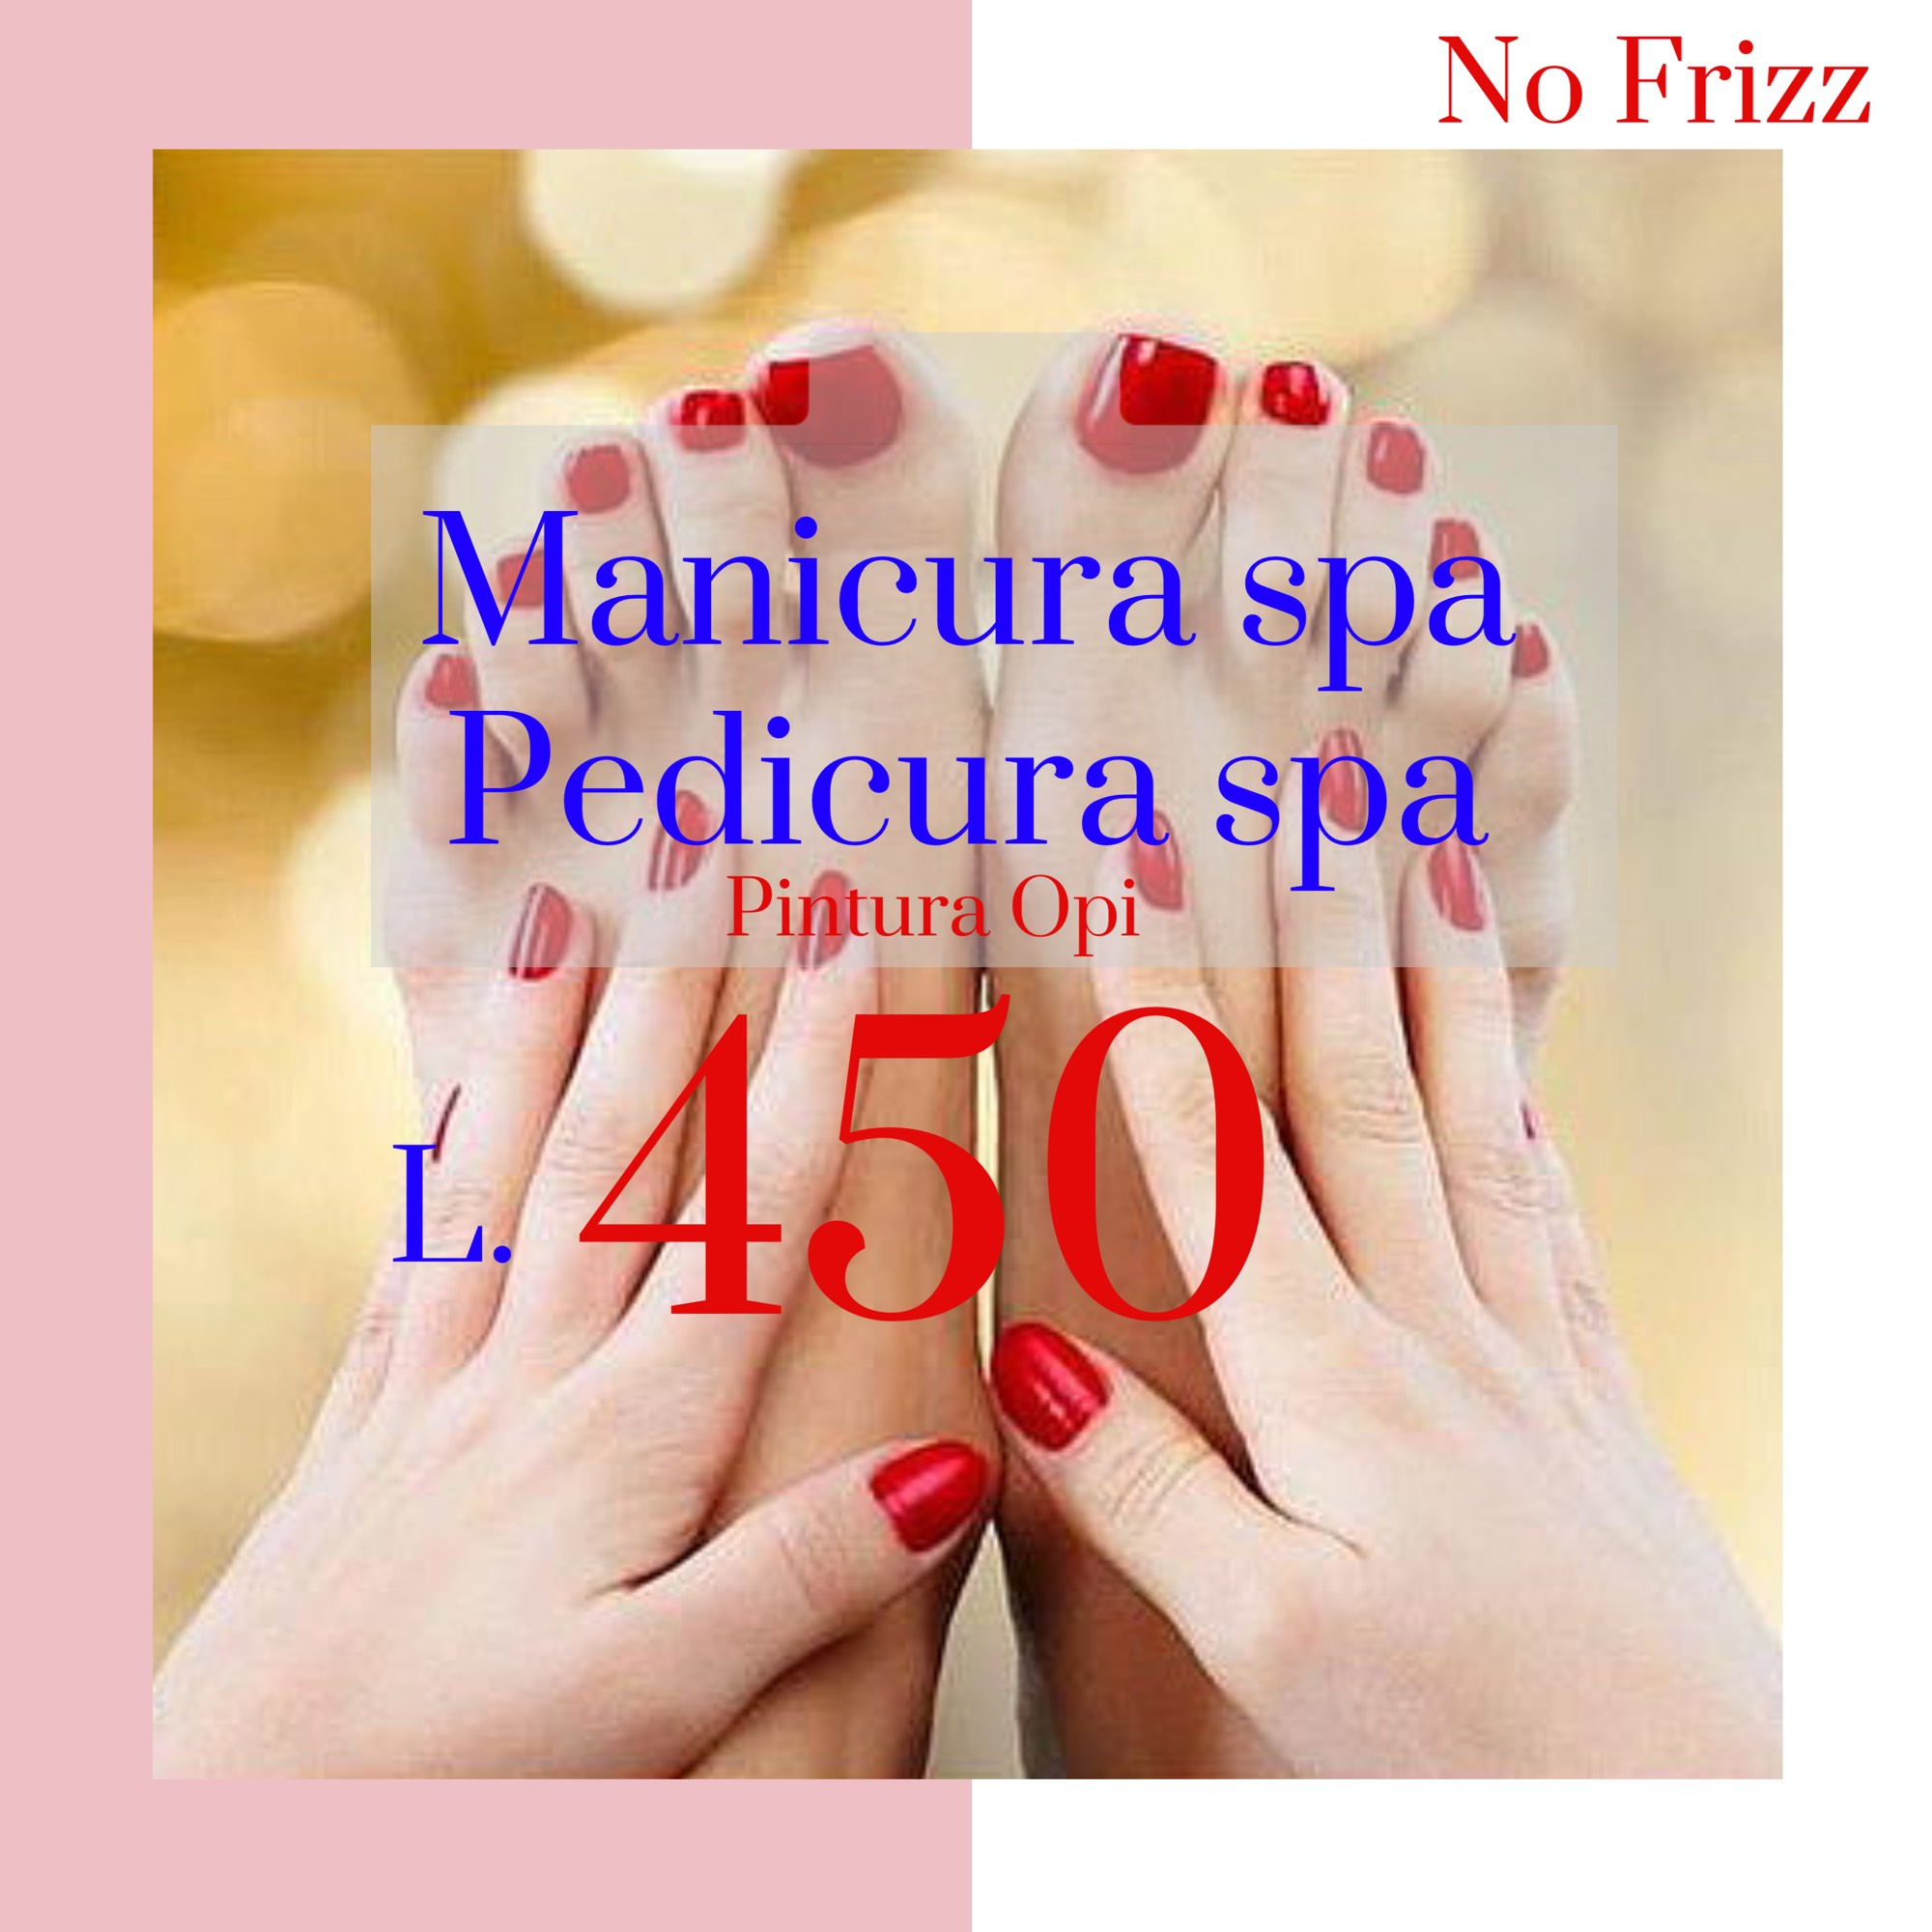 Manicura SPA, Pedicura SPA